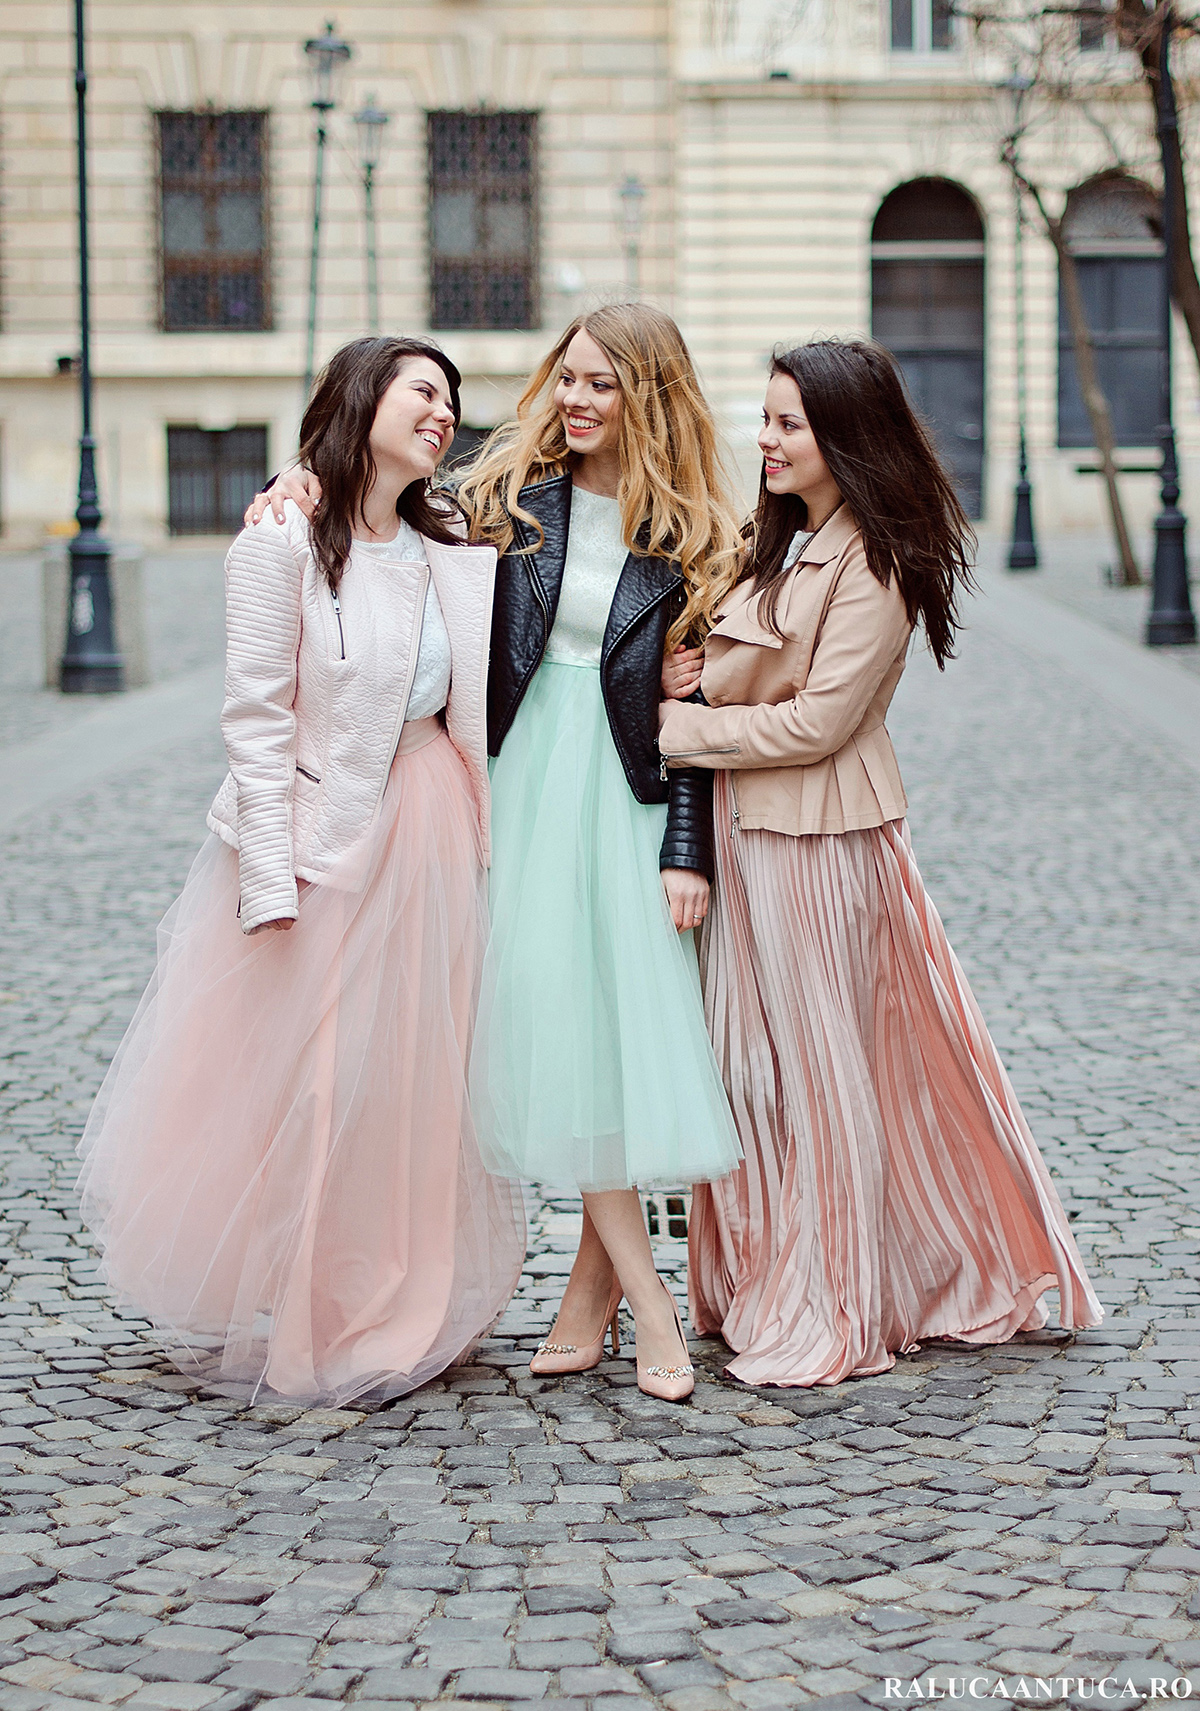 womens-day-march-8-mint-tulle-skirt-pink-tulle-feminine-outfit (2)